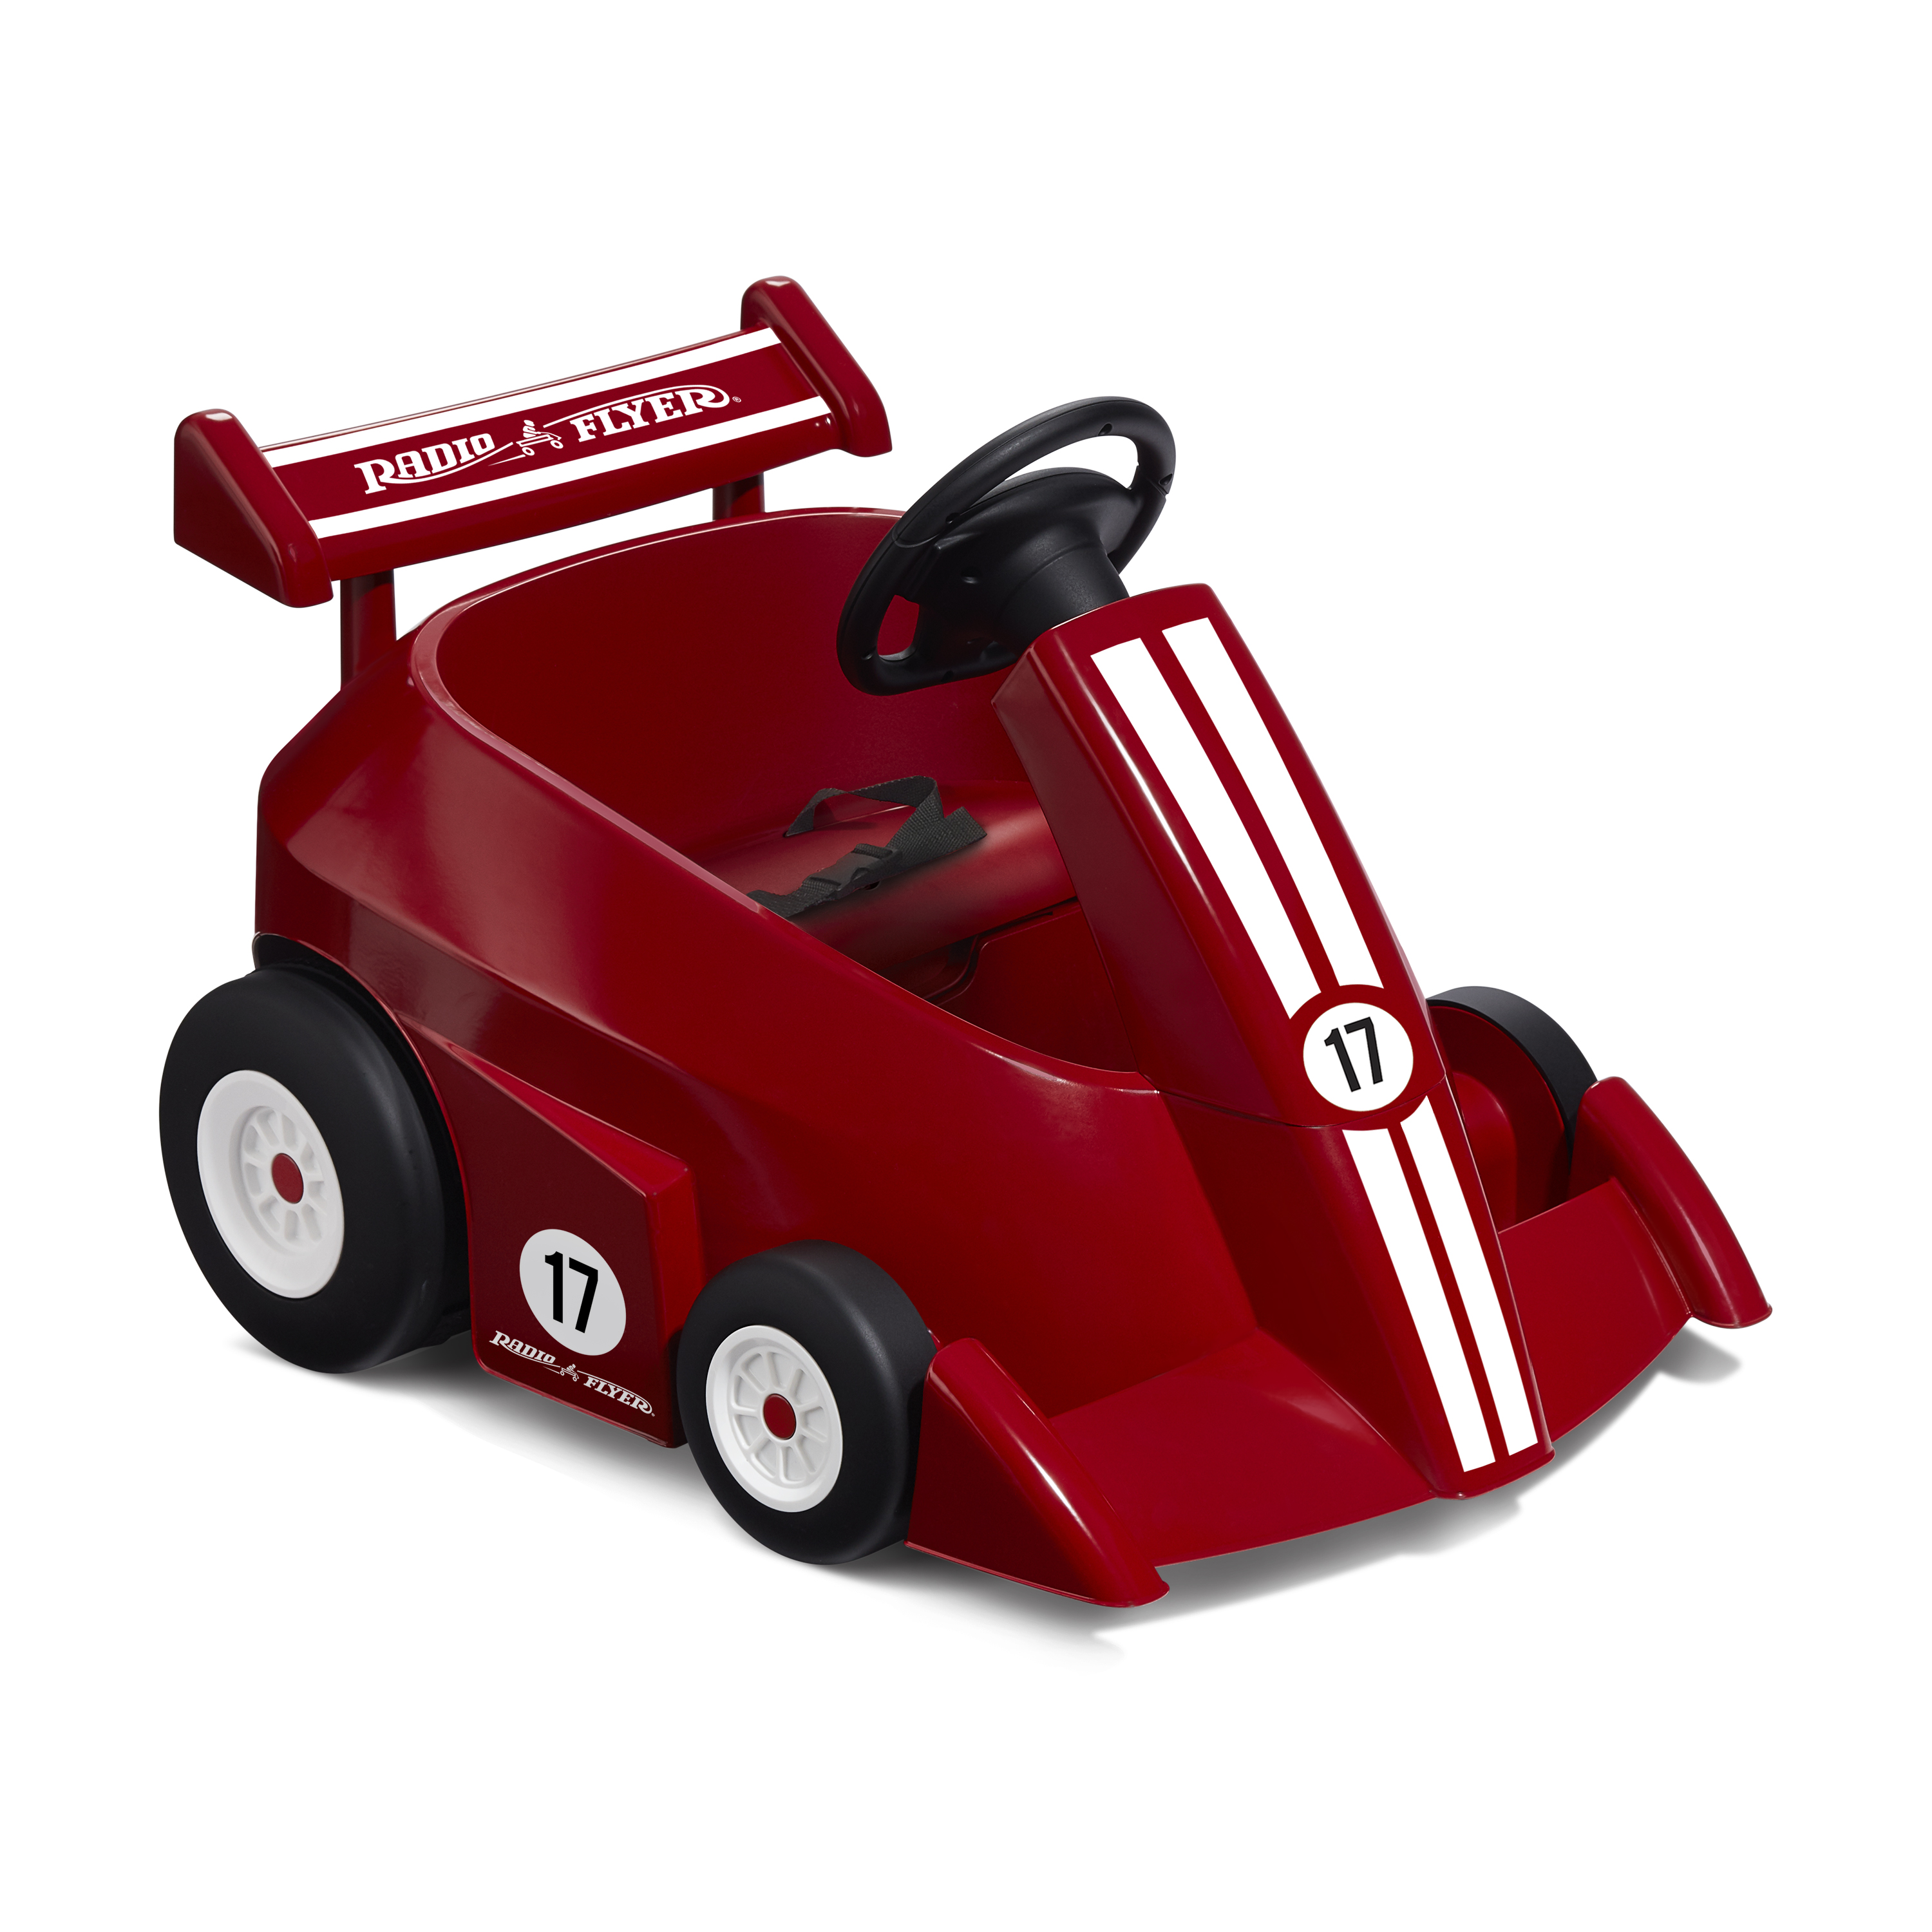 Radio Flyer Grow with Me Racer Battery Powered Ride On with Parent Pilot Remote Control by Radio Flyer